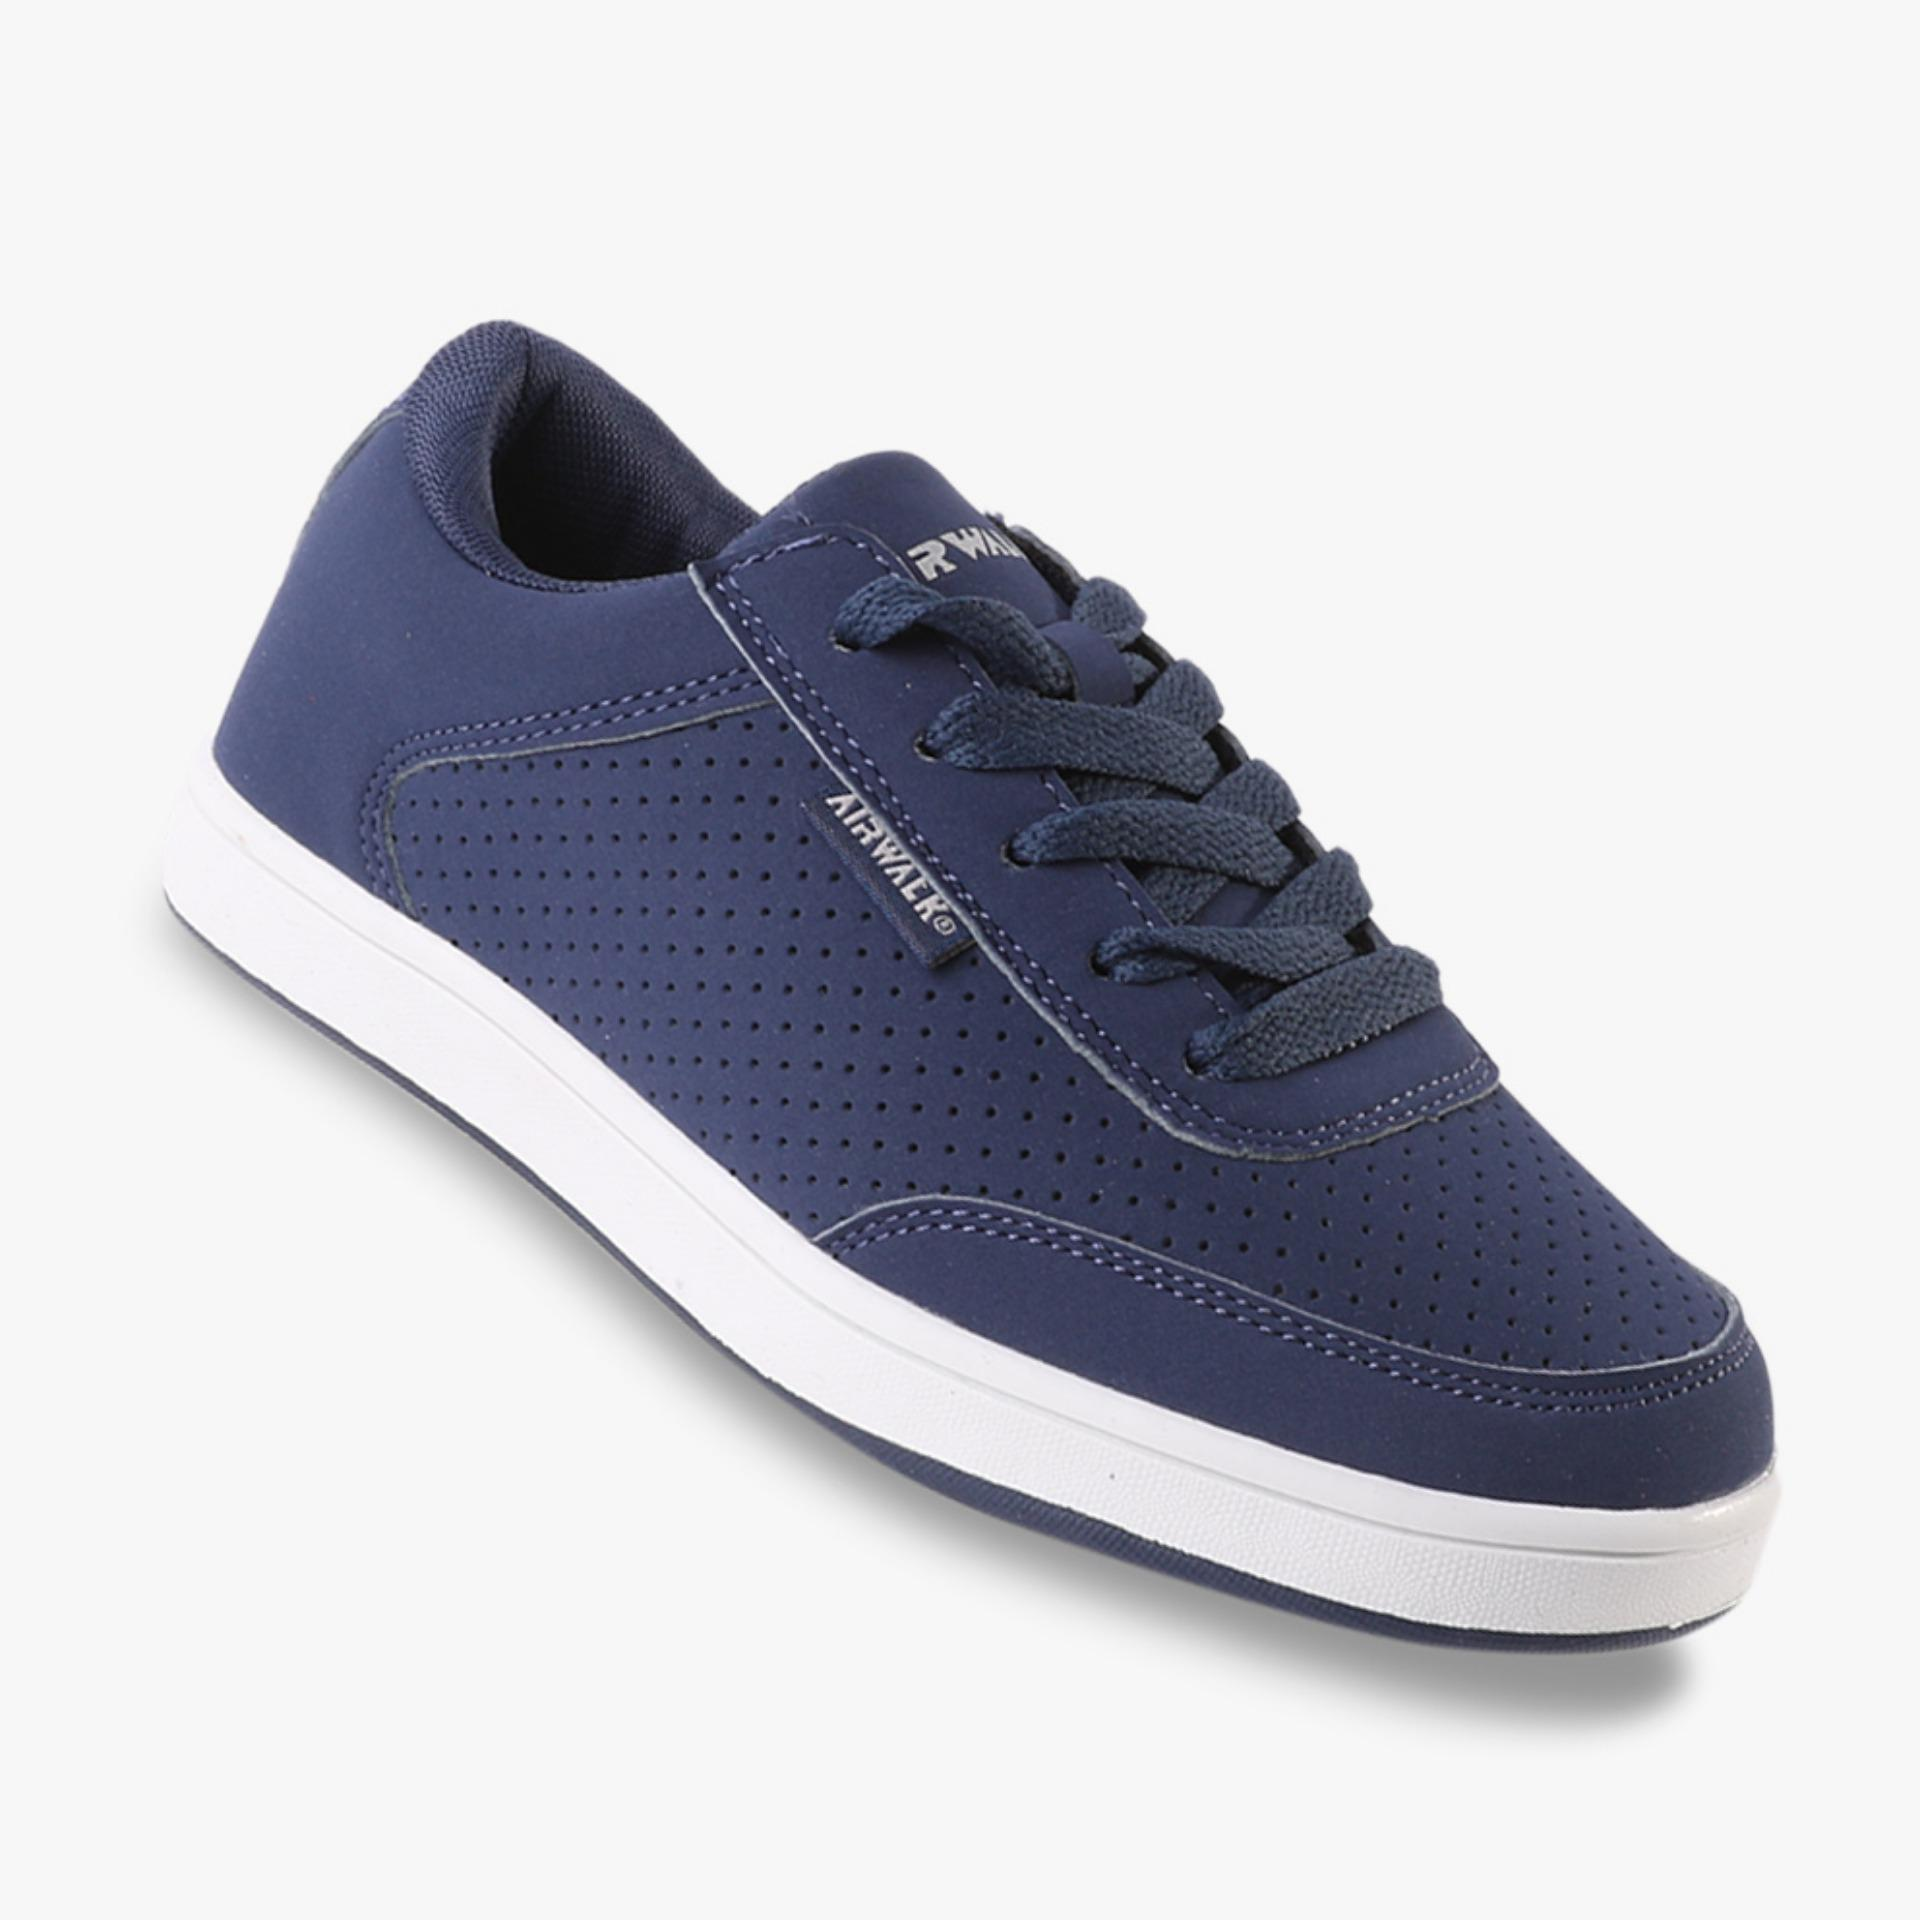 Penawaran Istimewa Airwalk Jayce Jr Boys Sneakers Shoes Navy Terbaru